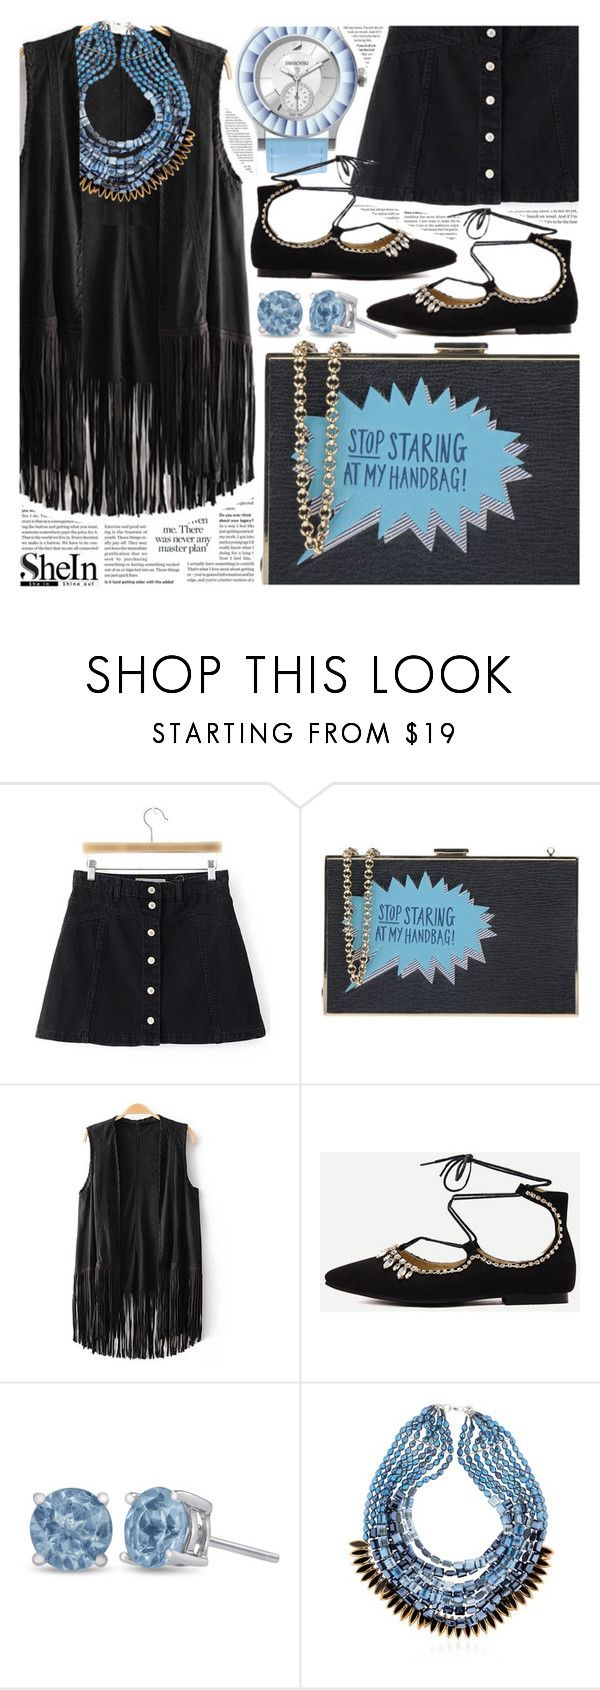 """""""Girl 'n' Trend"""" by pastelneon ❤ liked on Polyvore featuring Anya Hindmarch and NIGHTMARKET"""